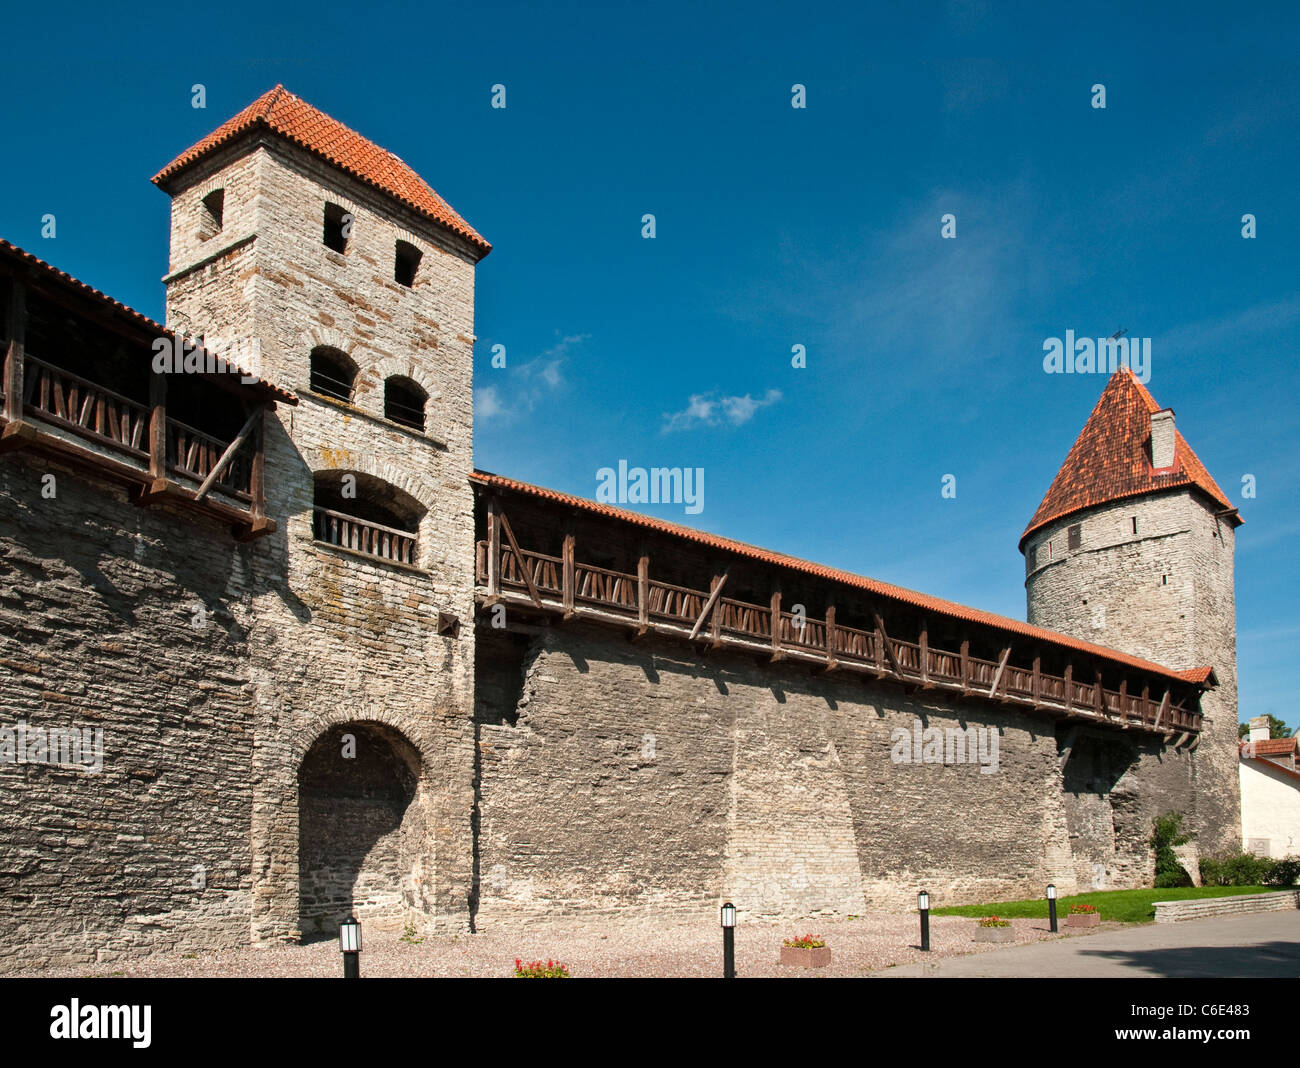 Ancient city walls and watchtowers in Tallinn, Estonia - Stock Image